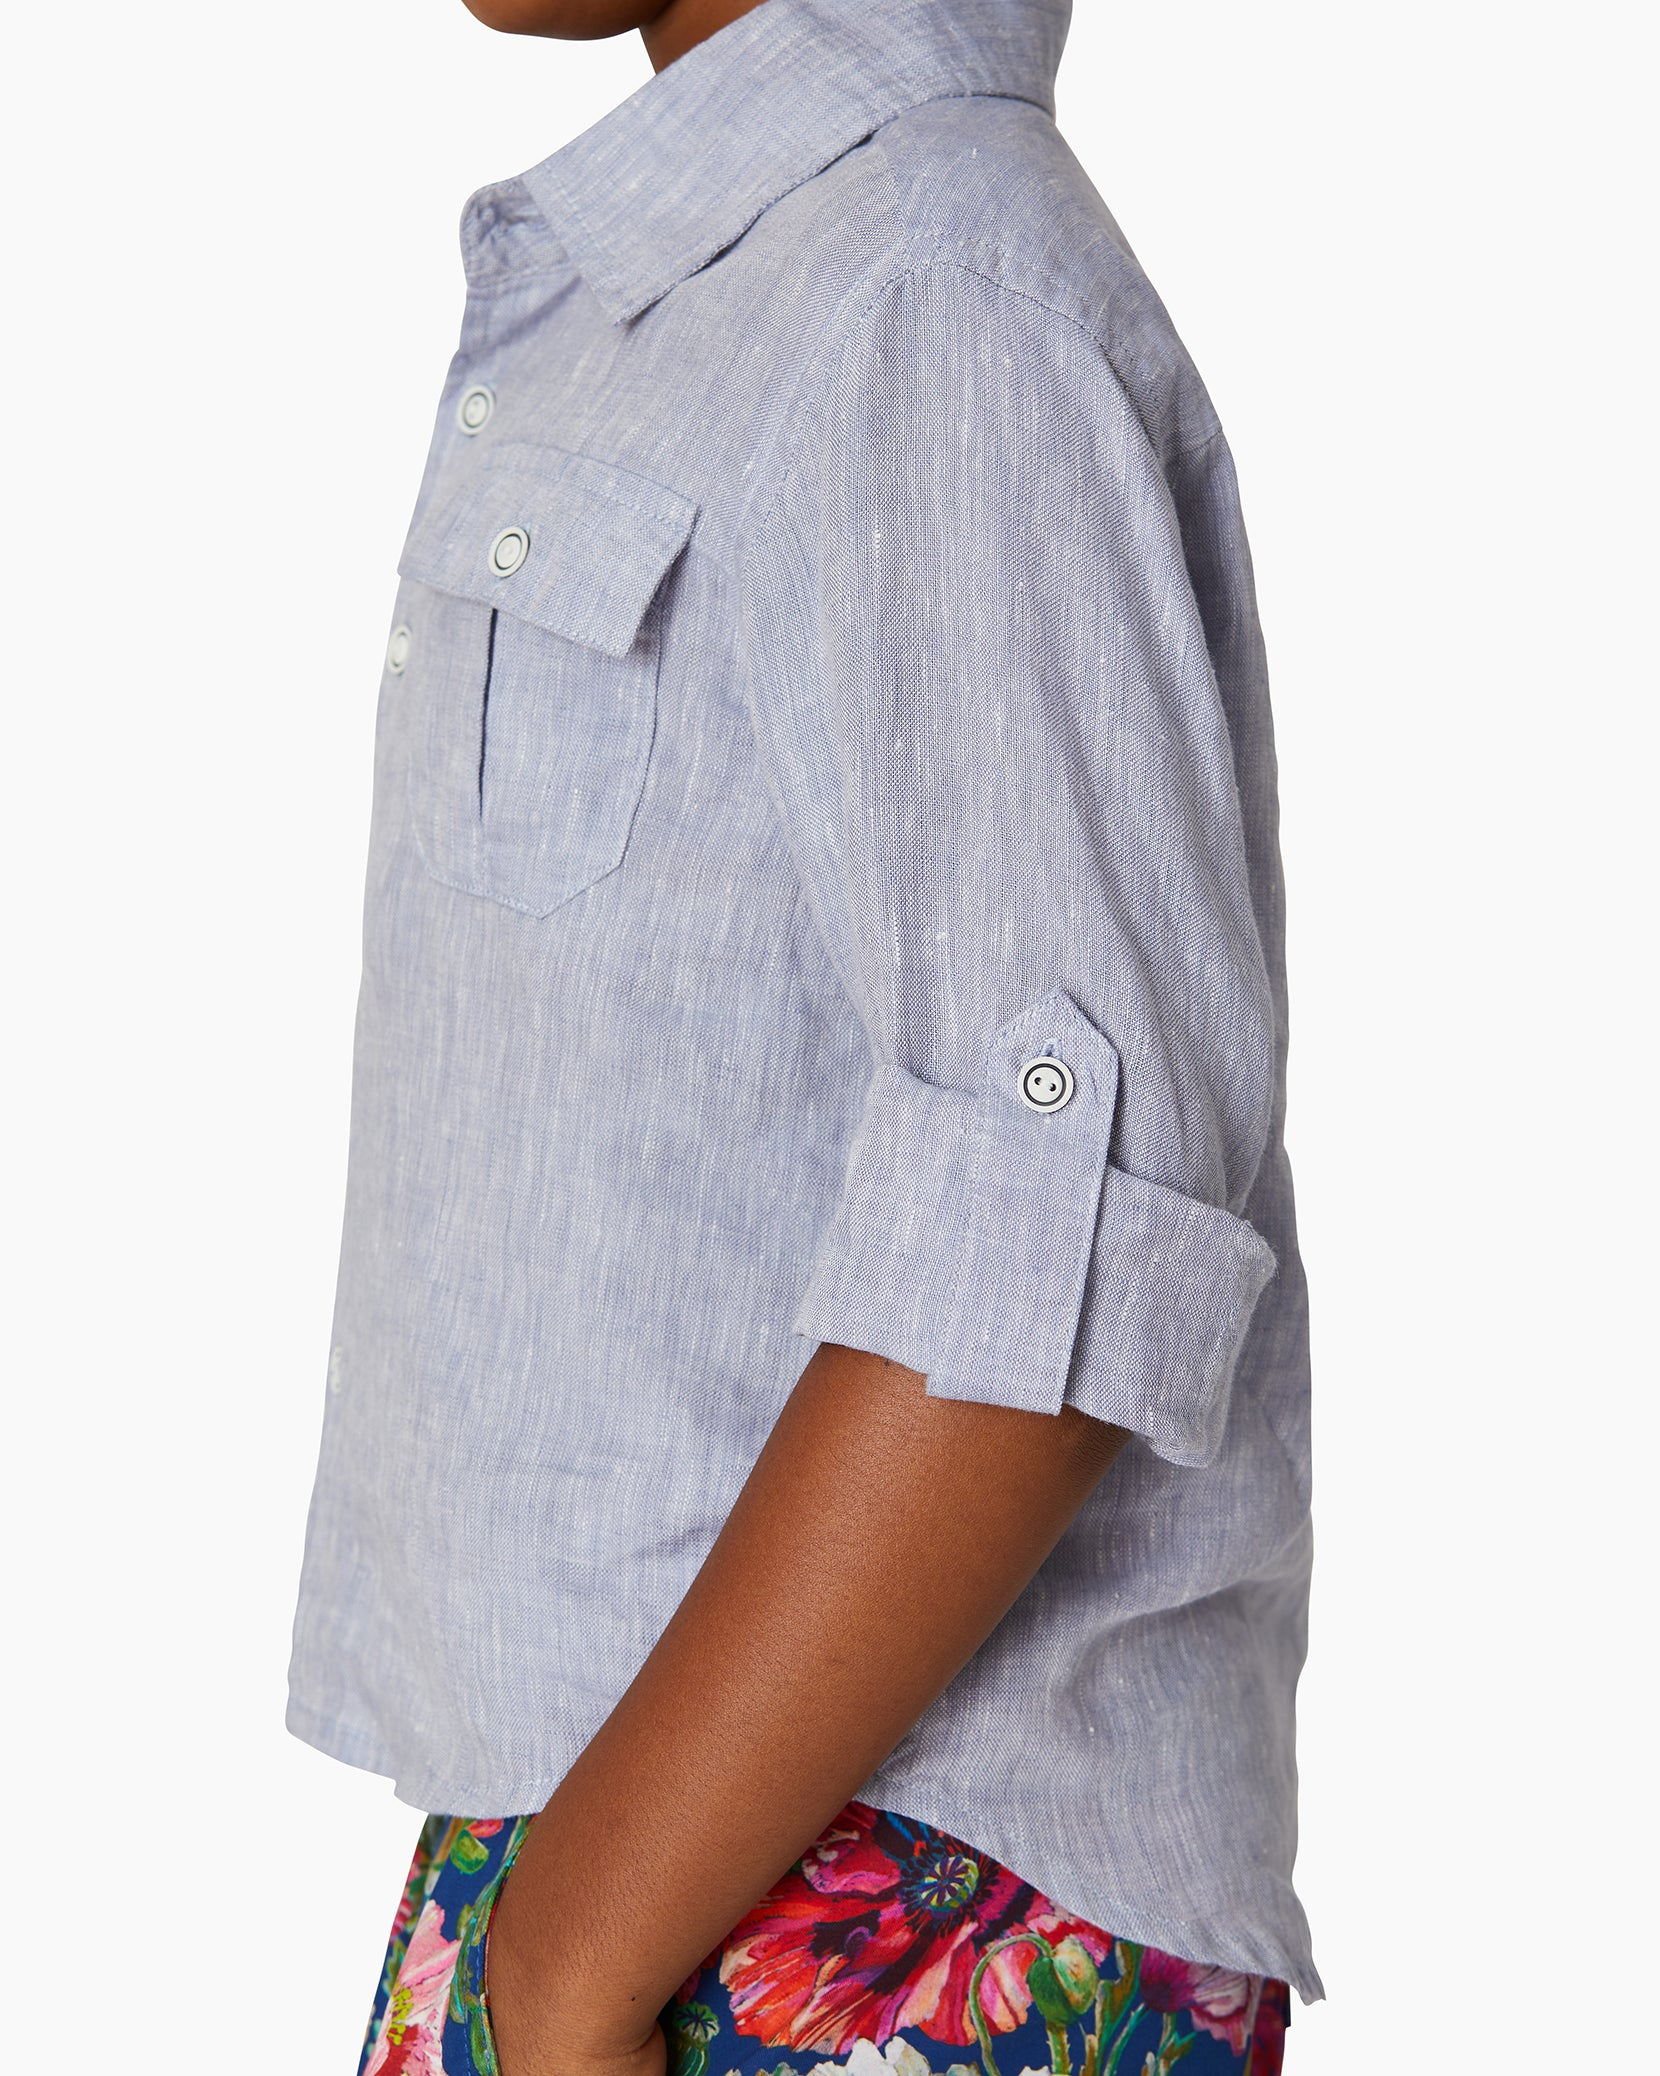 Boys Linen Garret Shirt in Denim - 5 - Onia